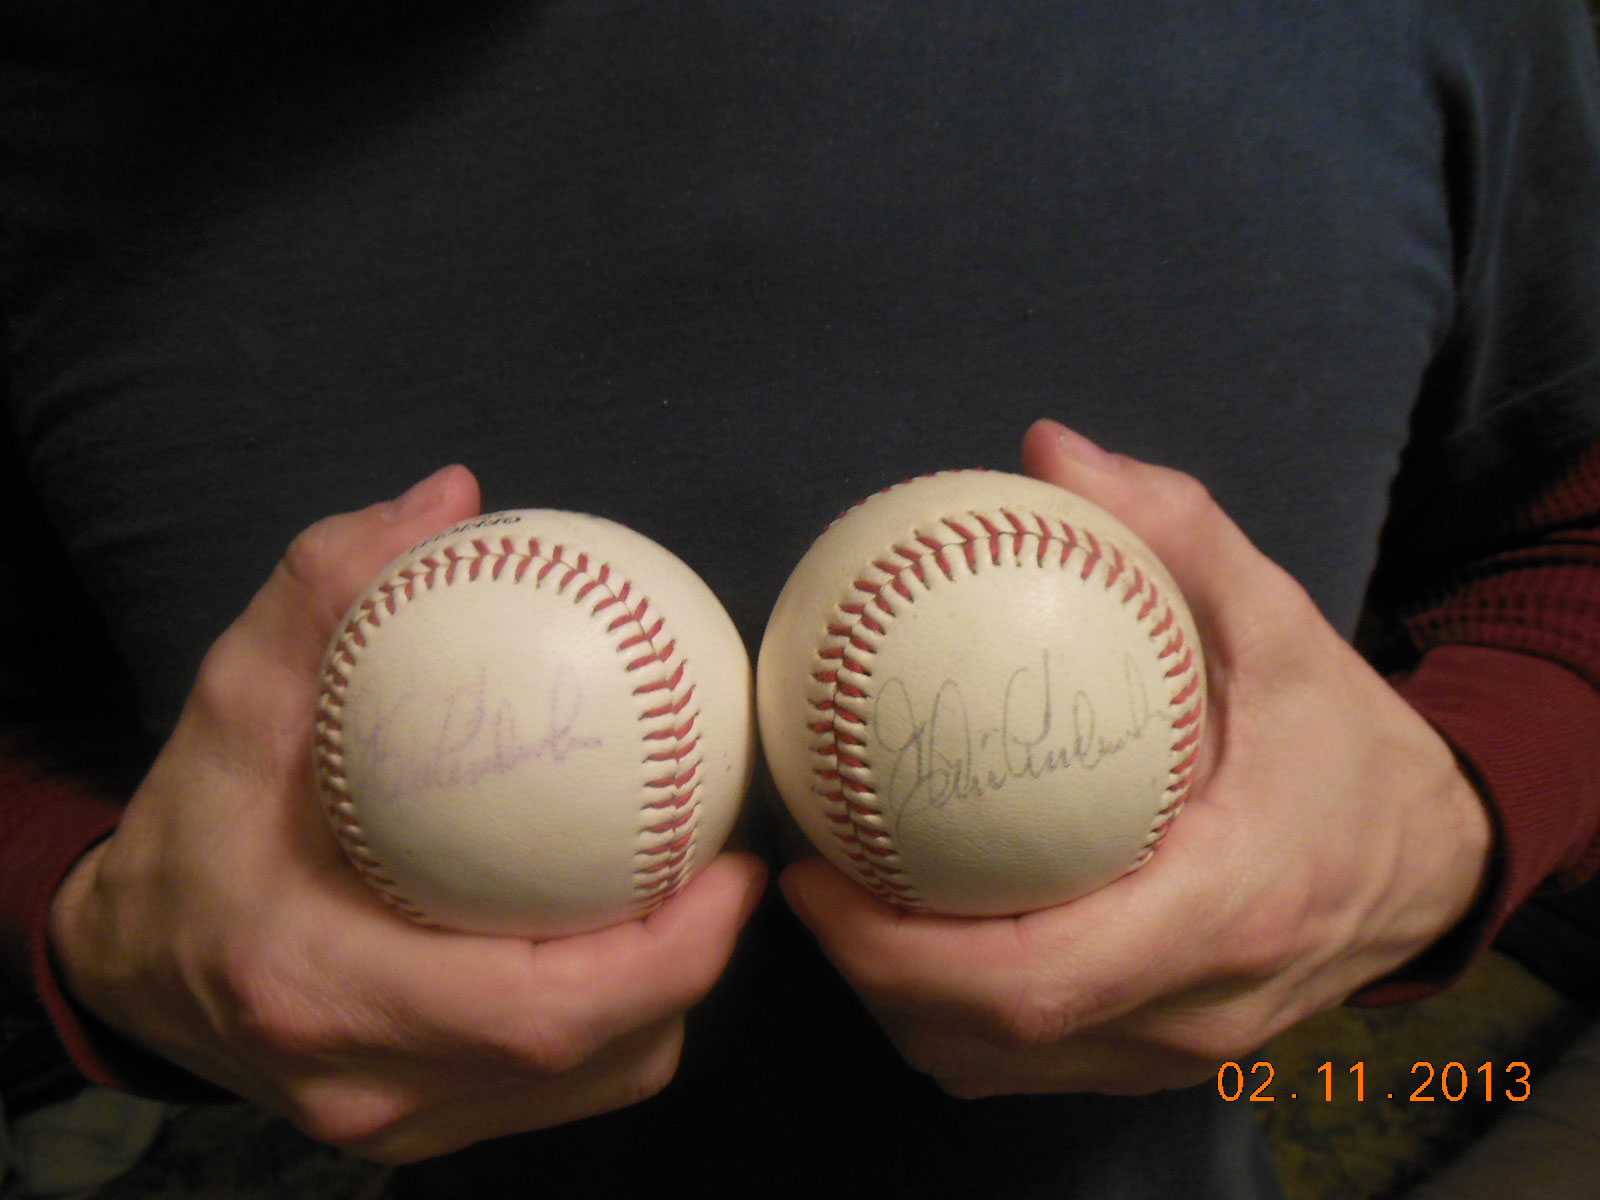 Autographed Balls from foreclosure cleaning